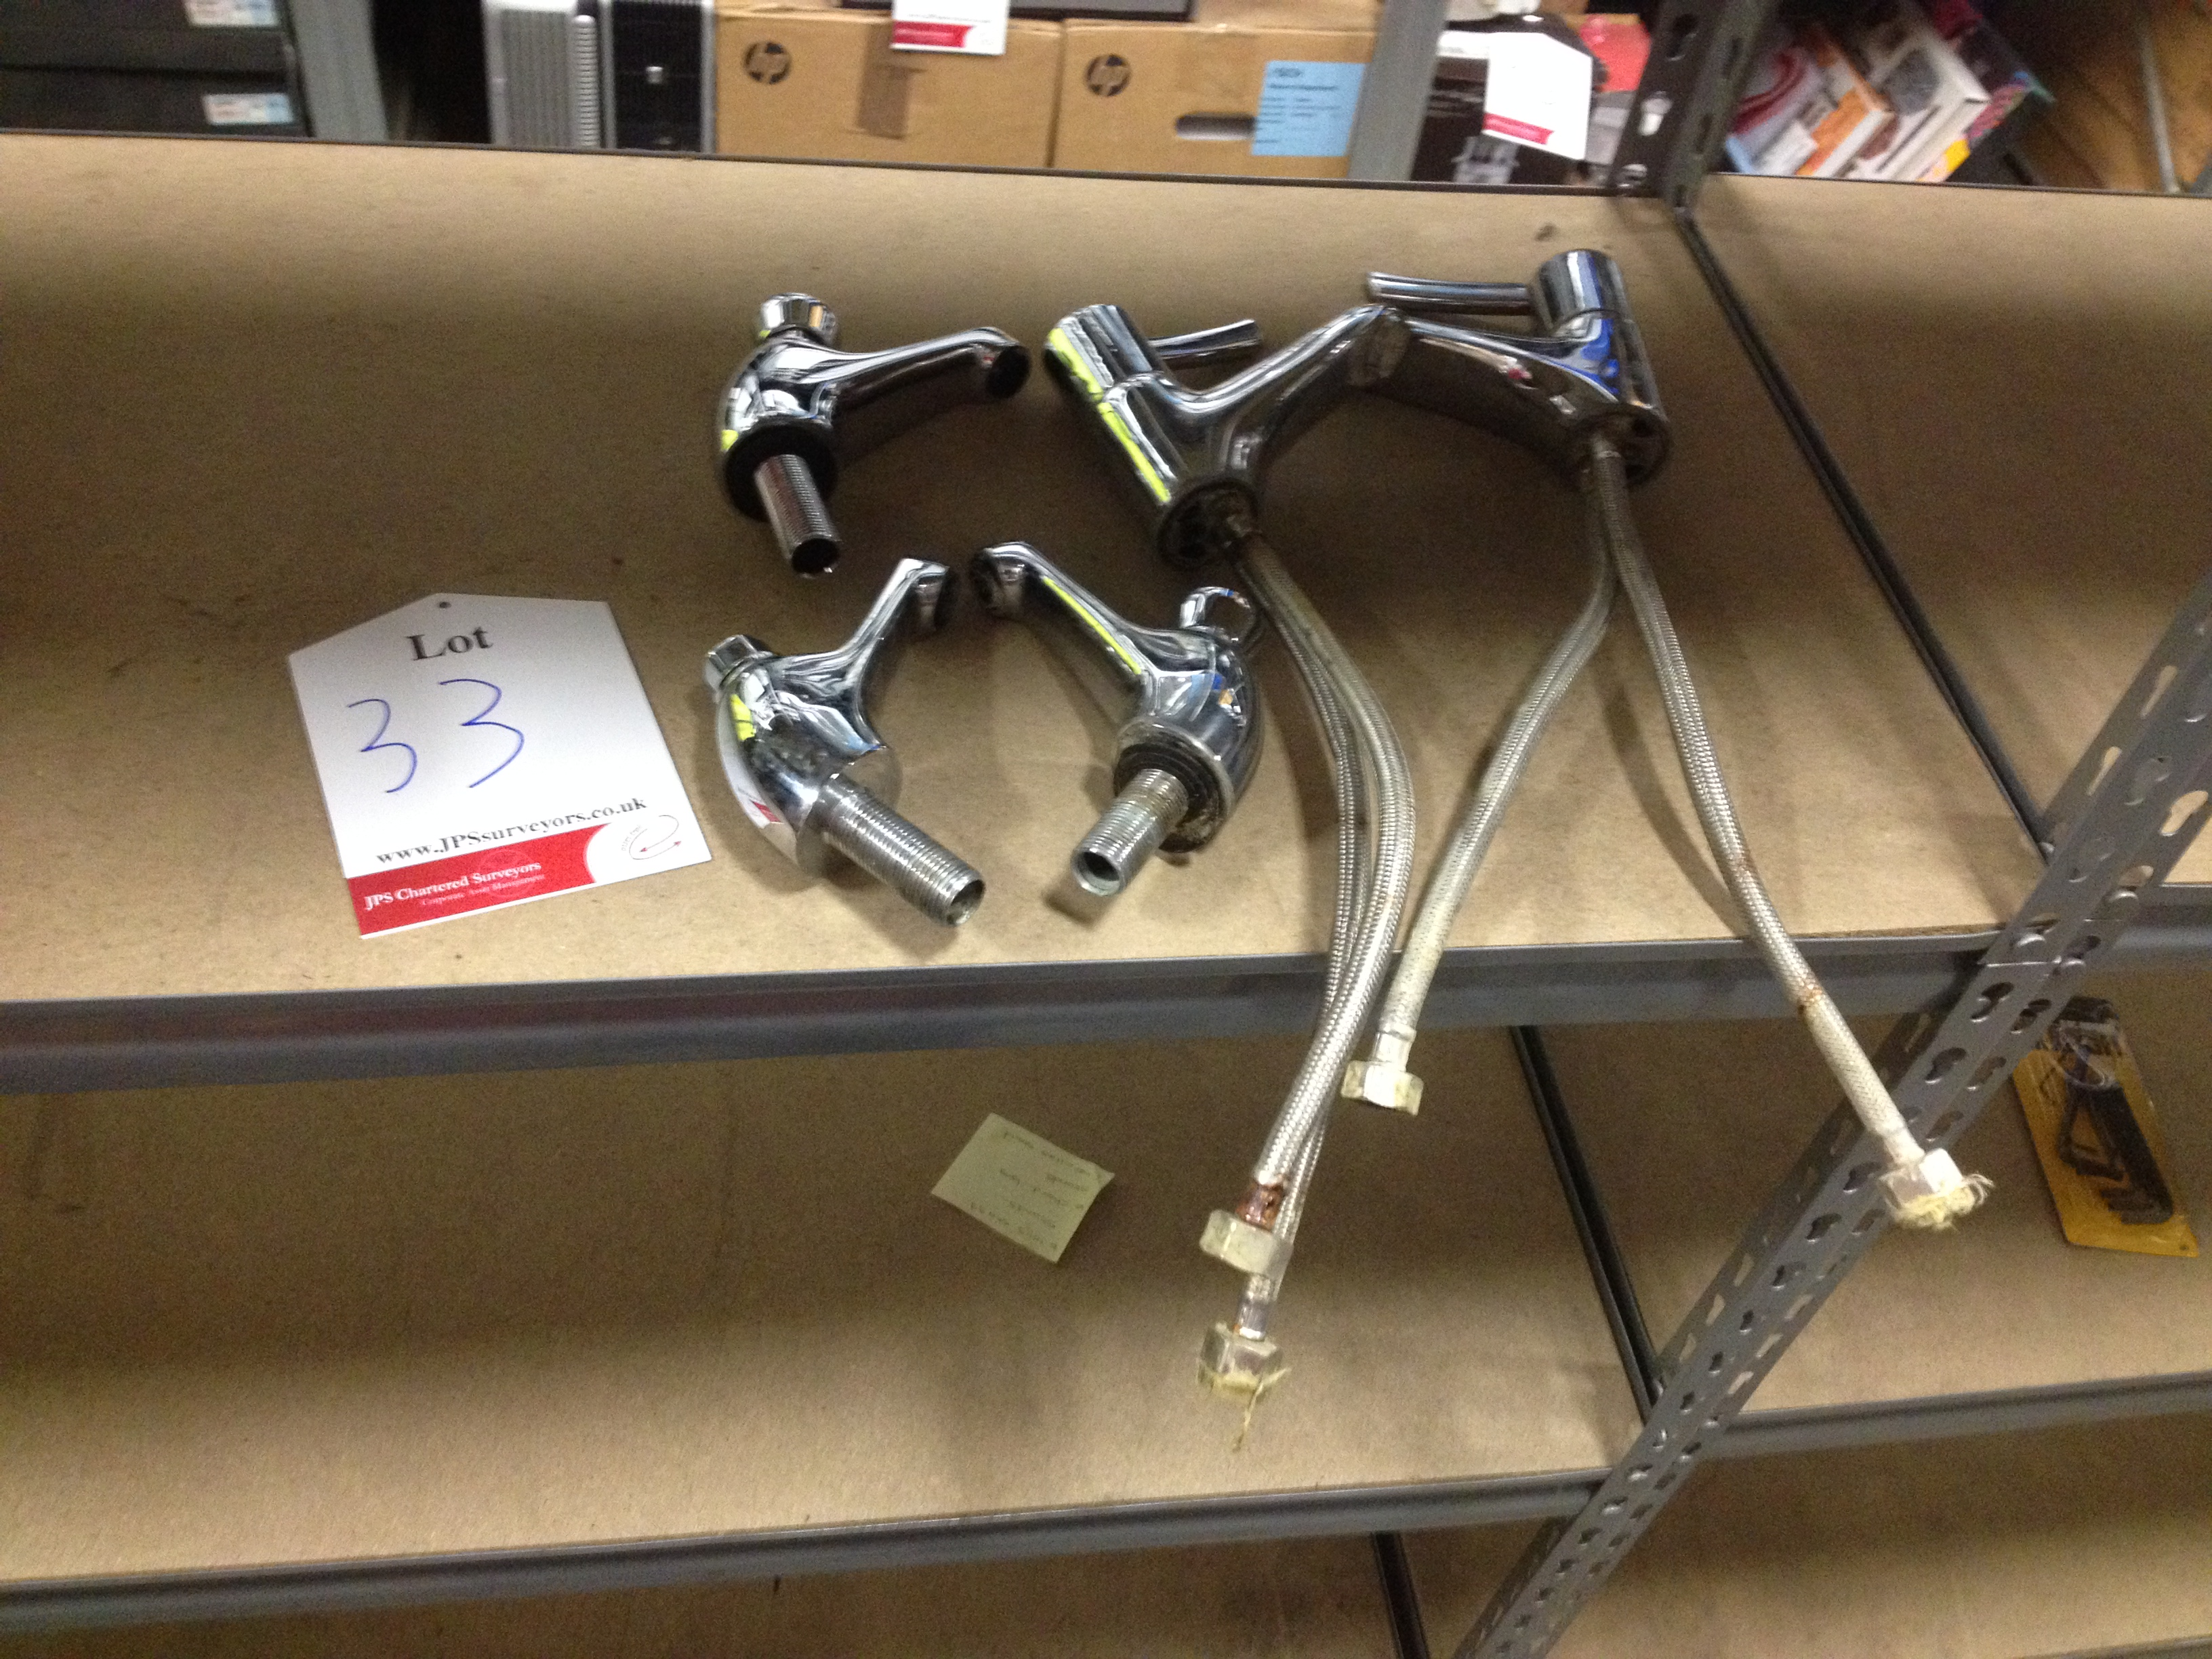 Mixed lot of Various Sink Taps - SEE PICTURES FOR FULL CONTENTS